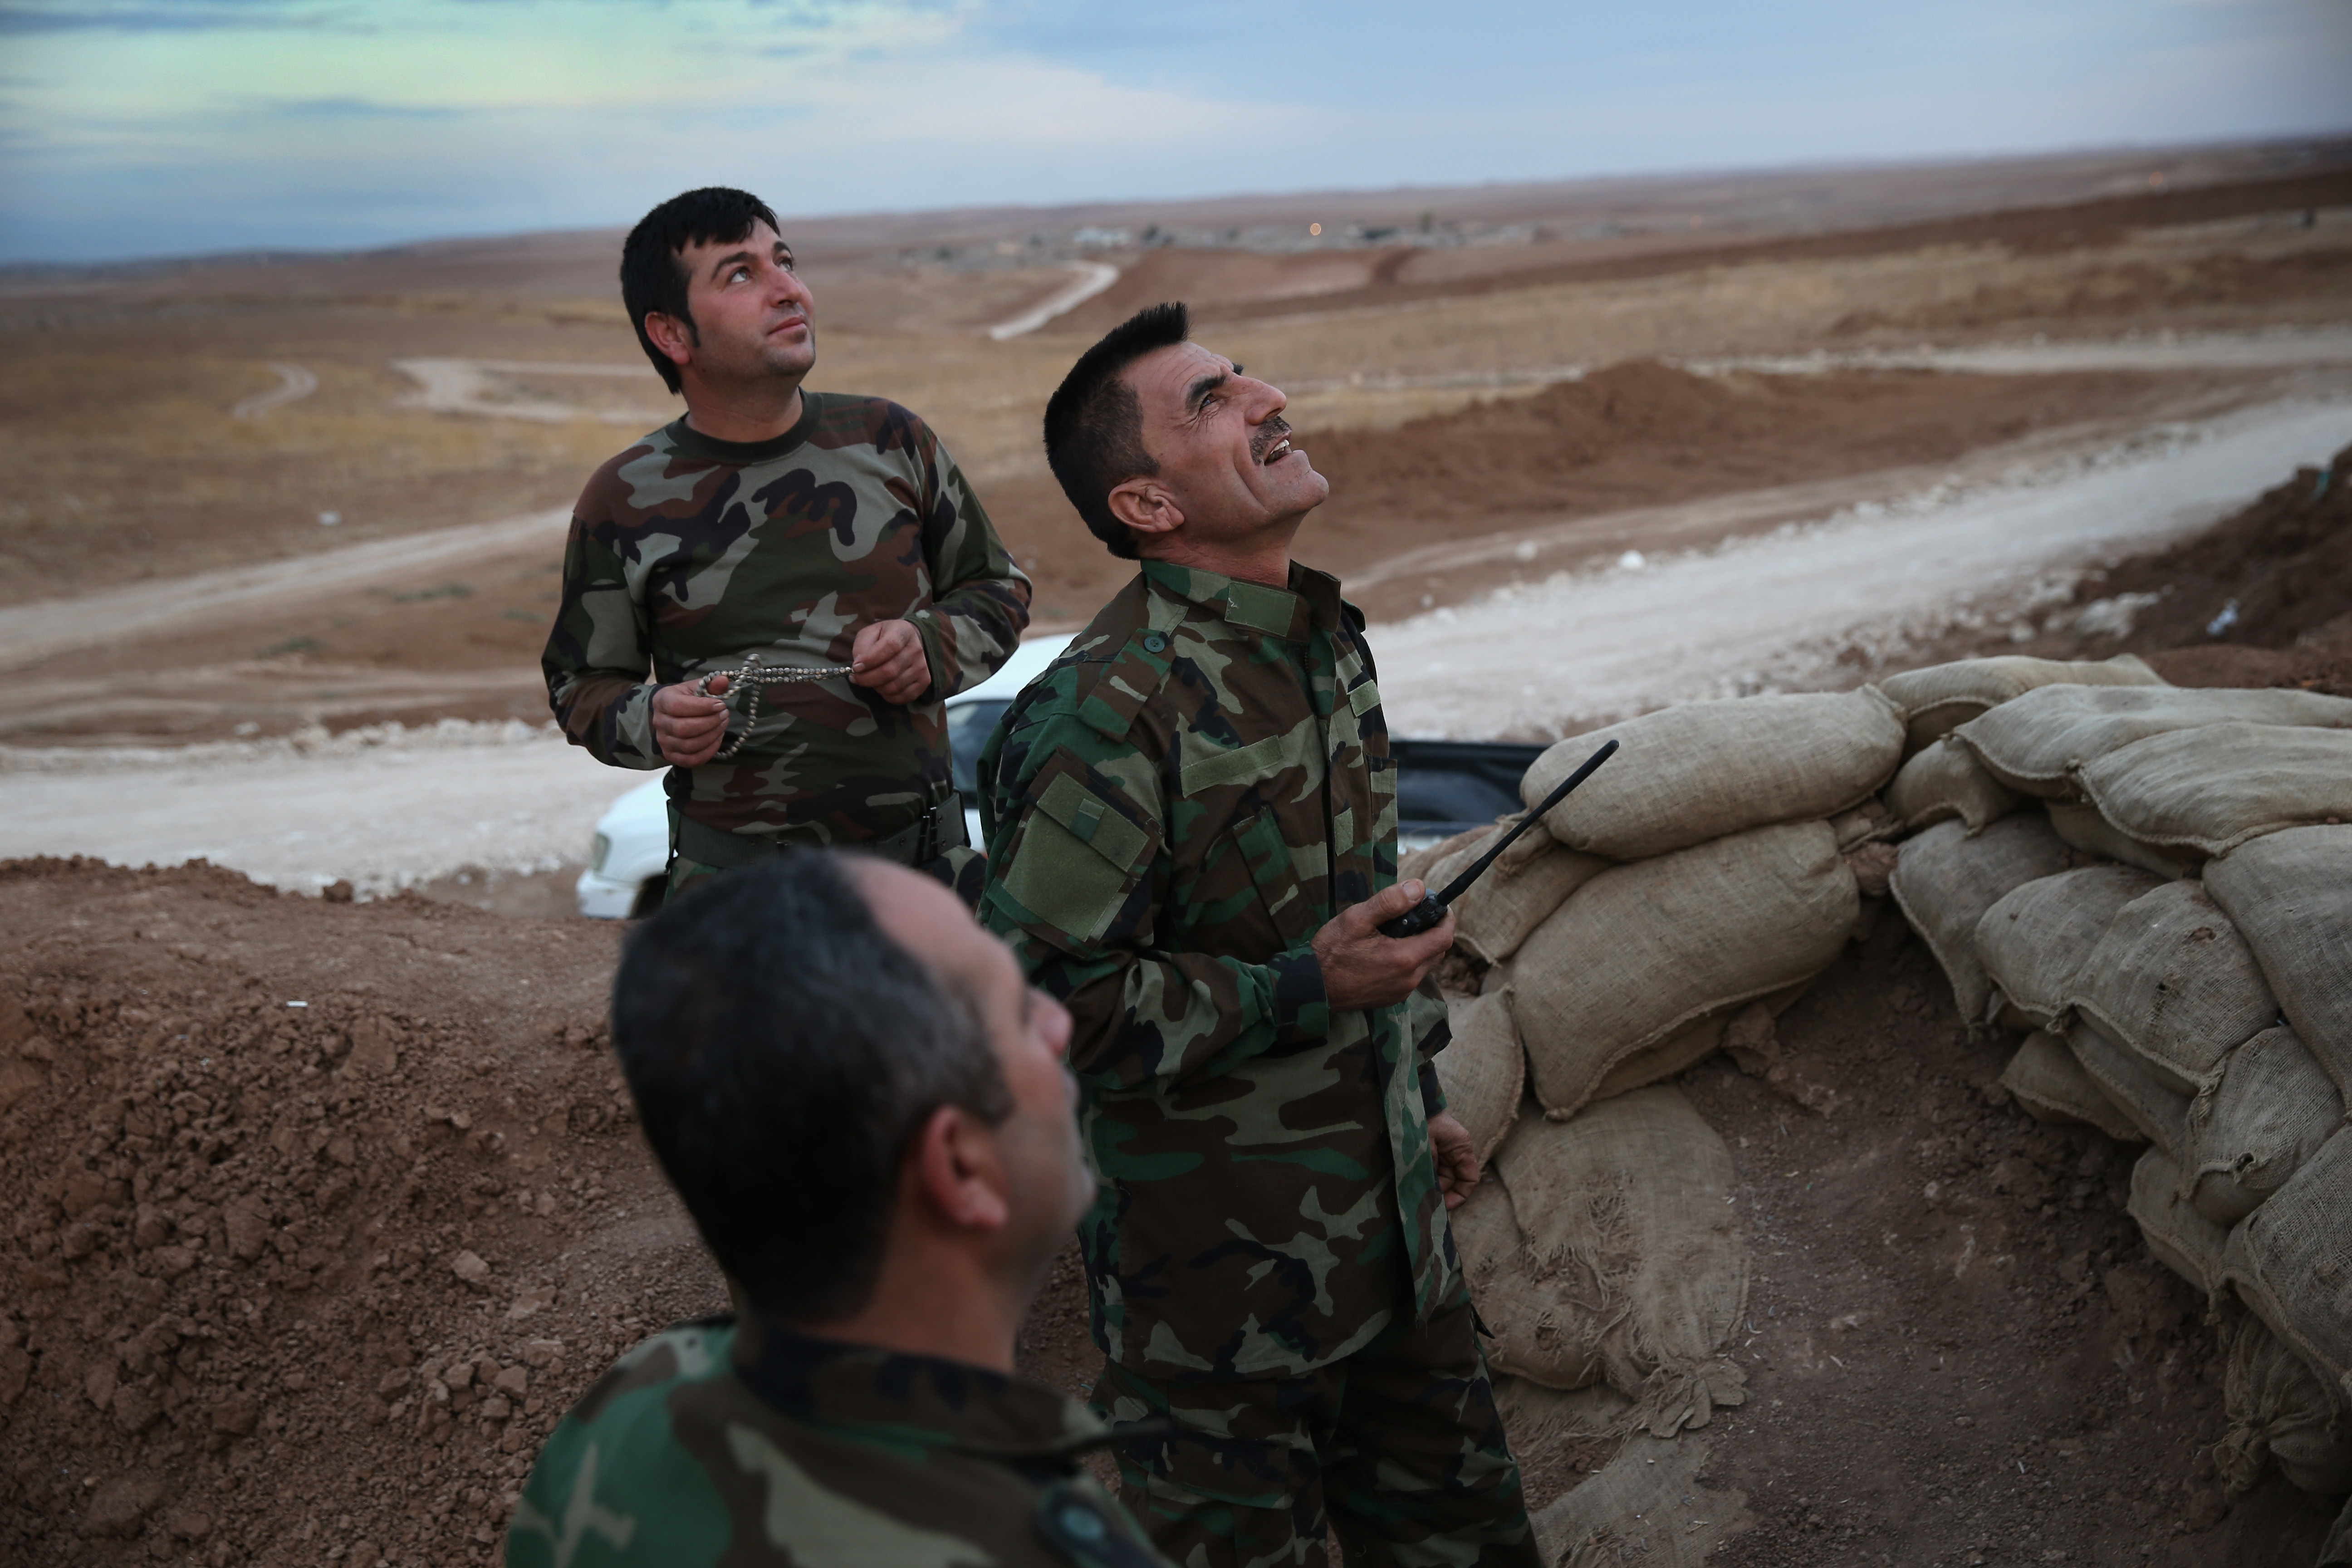 Camouflage-clad Kurdish forces in northern Iraq stand in a foxhole and look toward the sky.